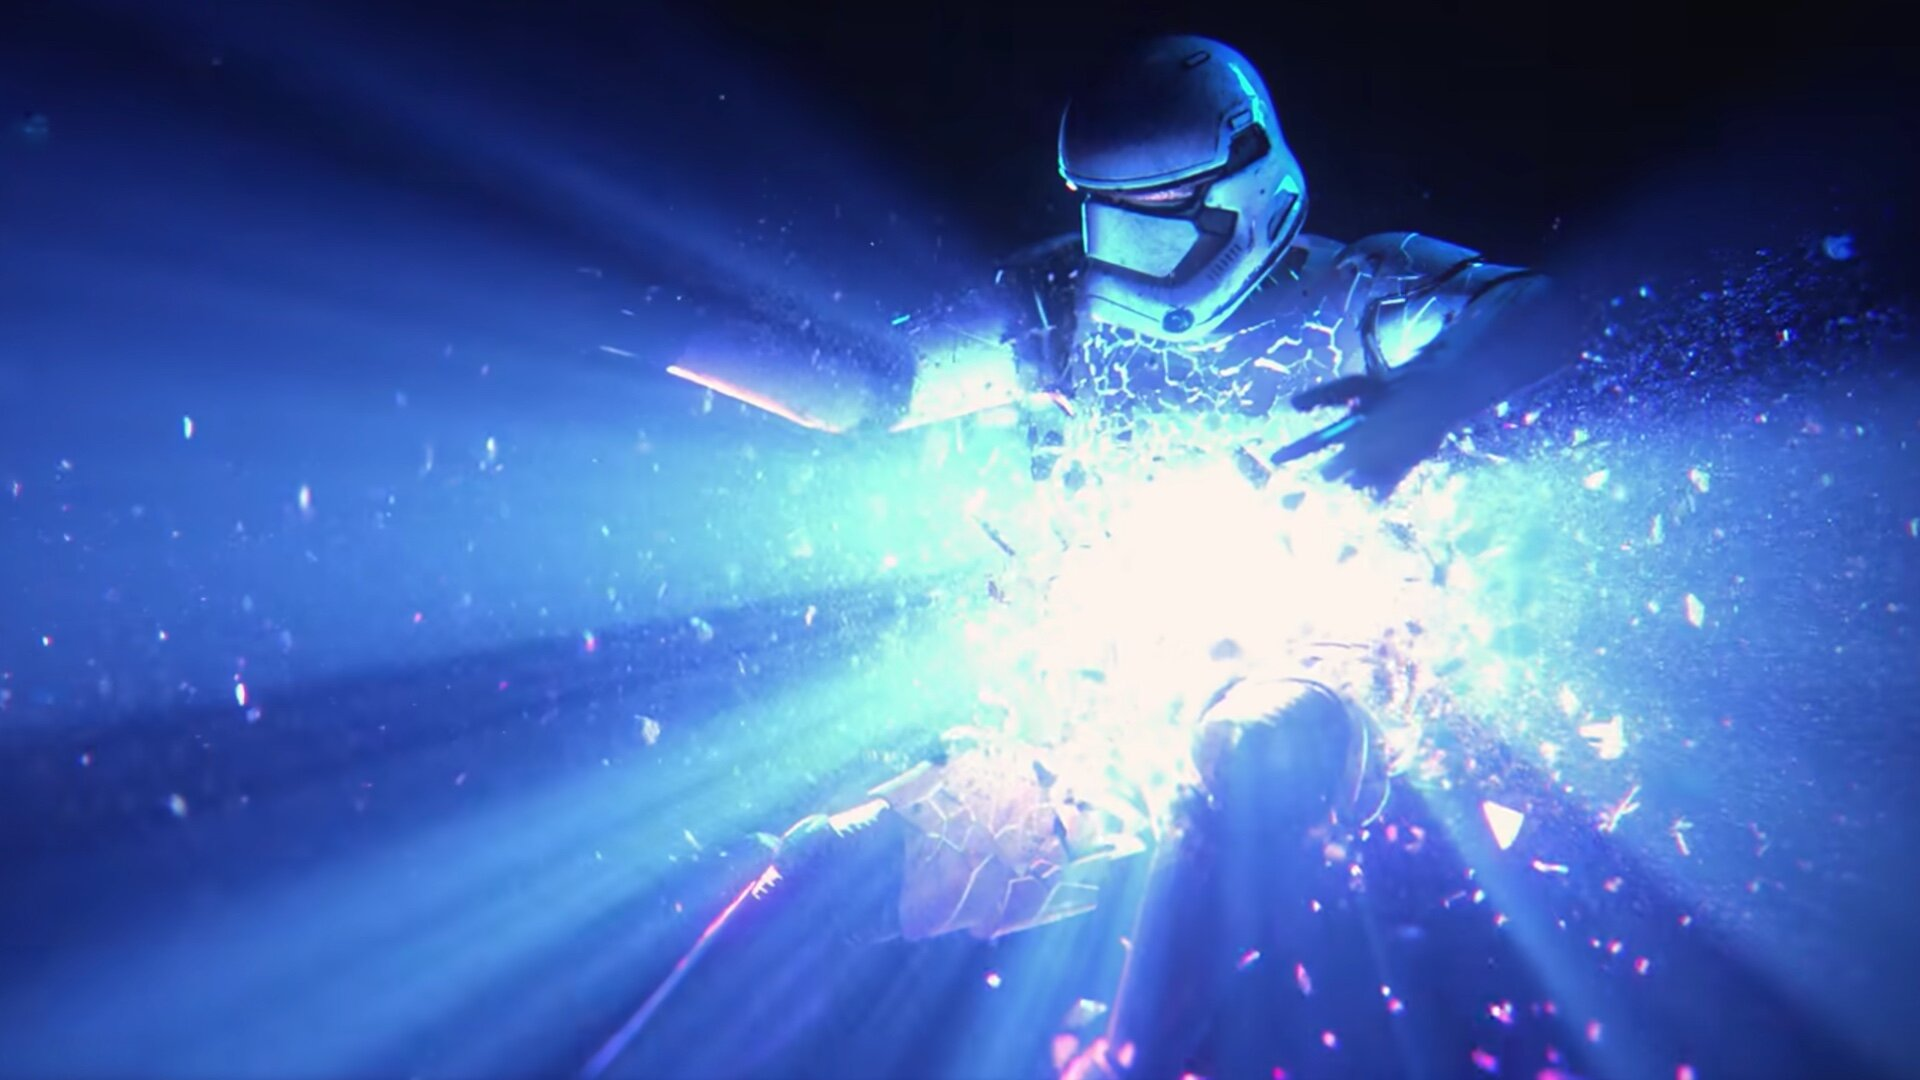 Fan Made Cgi Star Wars Short Film Star Wars The Last Stand Features Stormtroopers In The Heat Of Battle Geektyrant